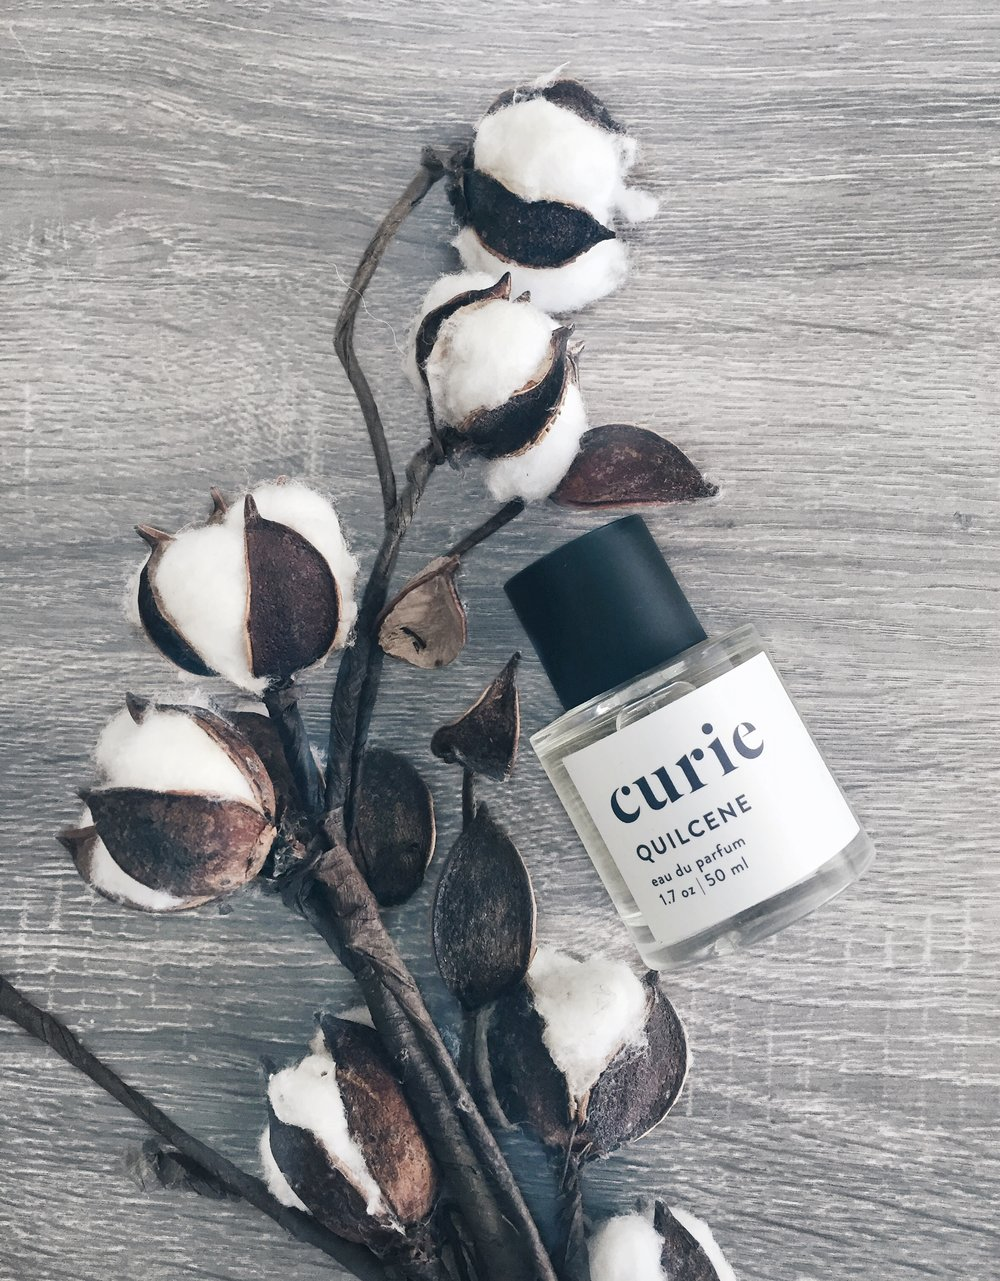 CURIE - 1. QUILCENE EAU DE PARFUMI'm always on the search for plantbased skincare, haircare, and artisanal fragrances and am so excited to find you! I absolutely love that Curie focuses on clean, natural formulas at amazing prices. The Quilcene is a unisex scent and has a wonderful bouquet of bergamot, conifer, and oak moss.